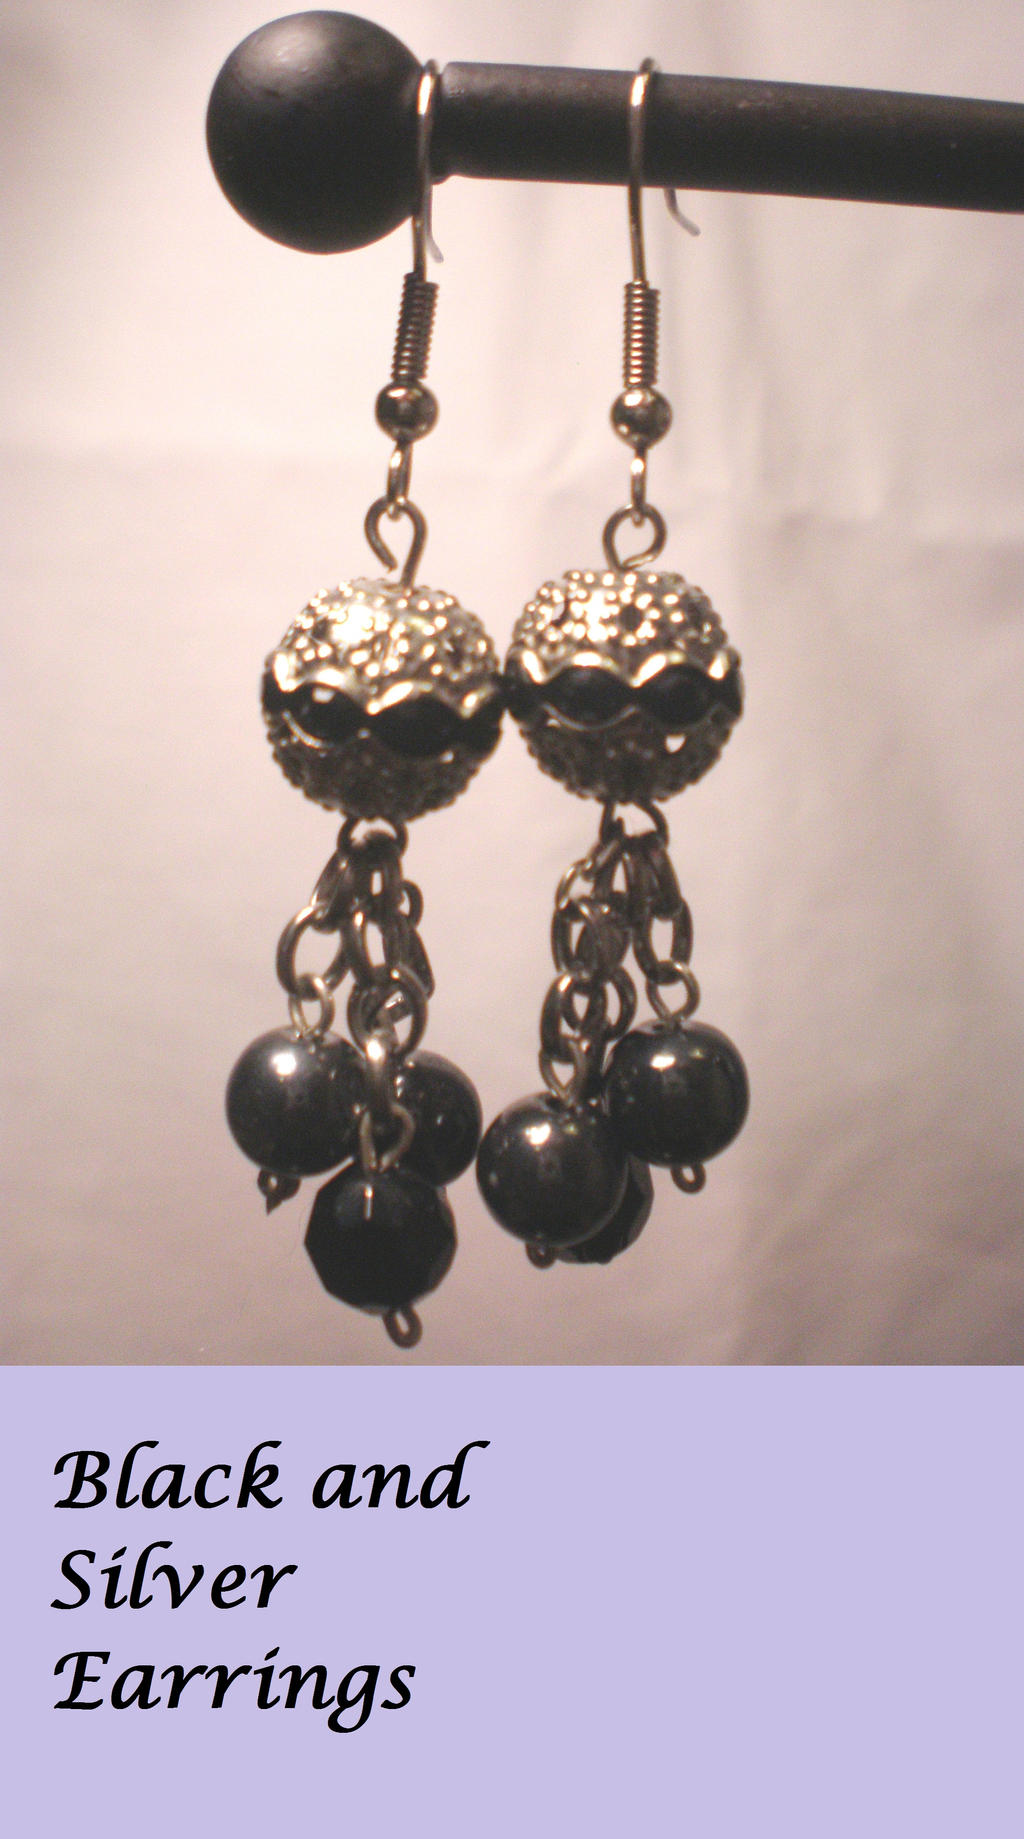 black and silver earrings by mariamhanna on deviantart